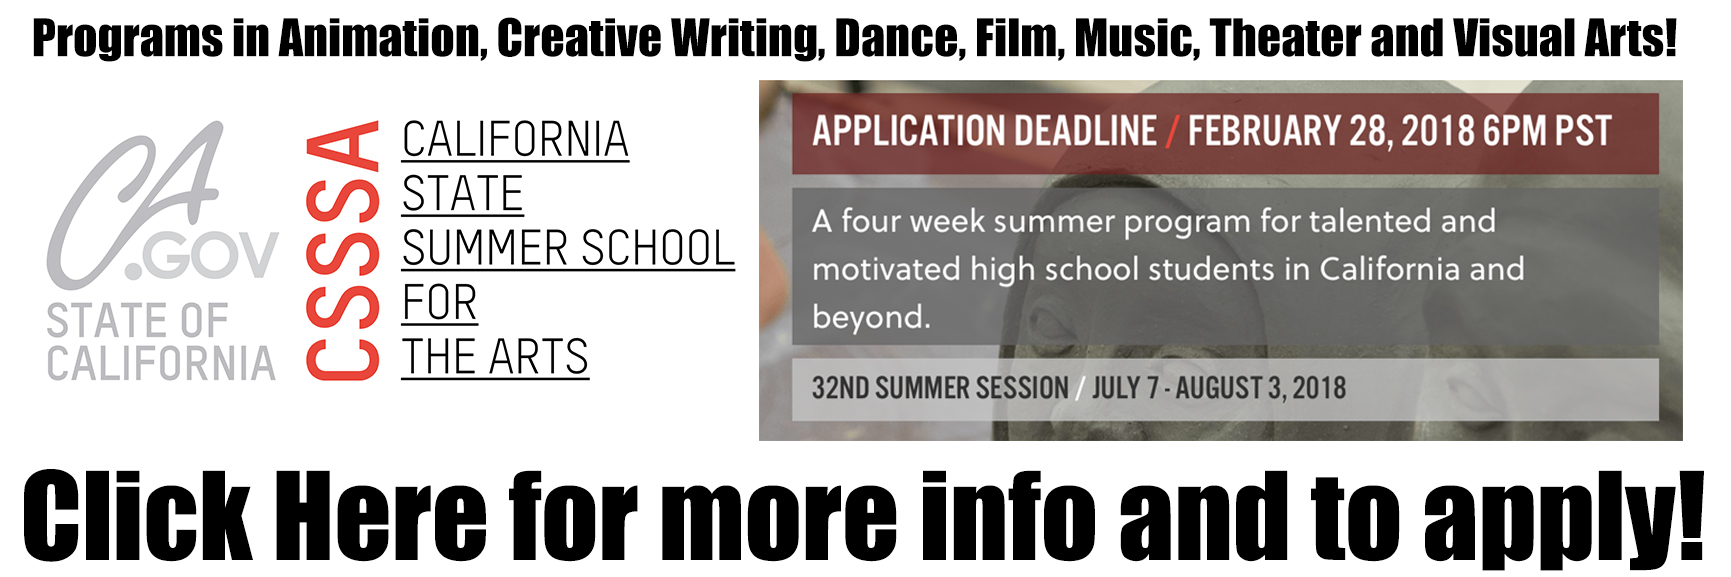 Summer Arts Program for High School Students